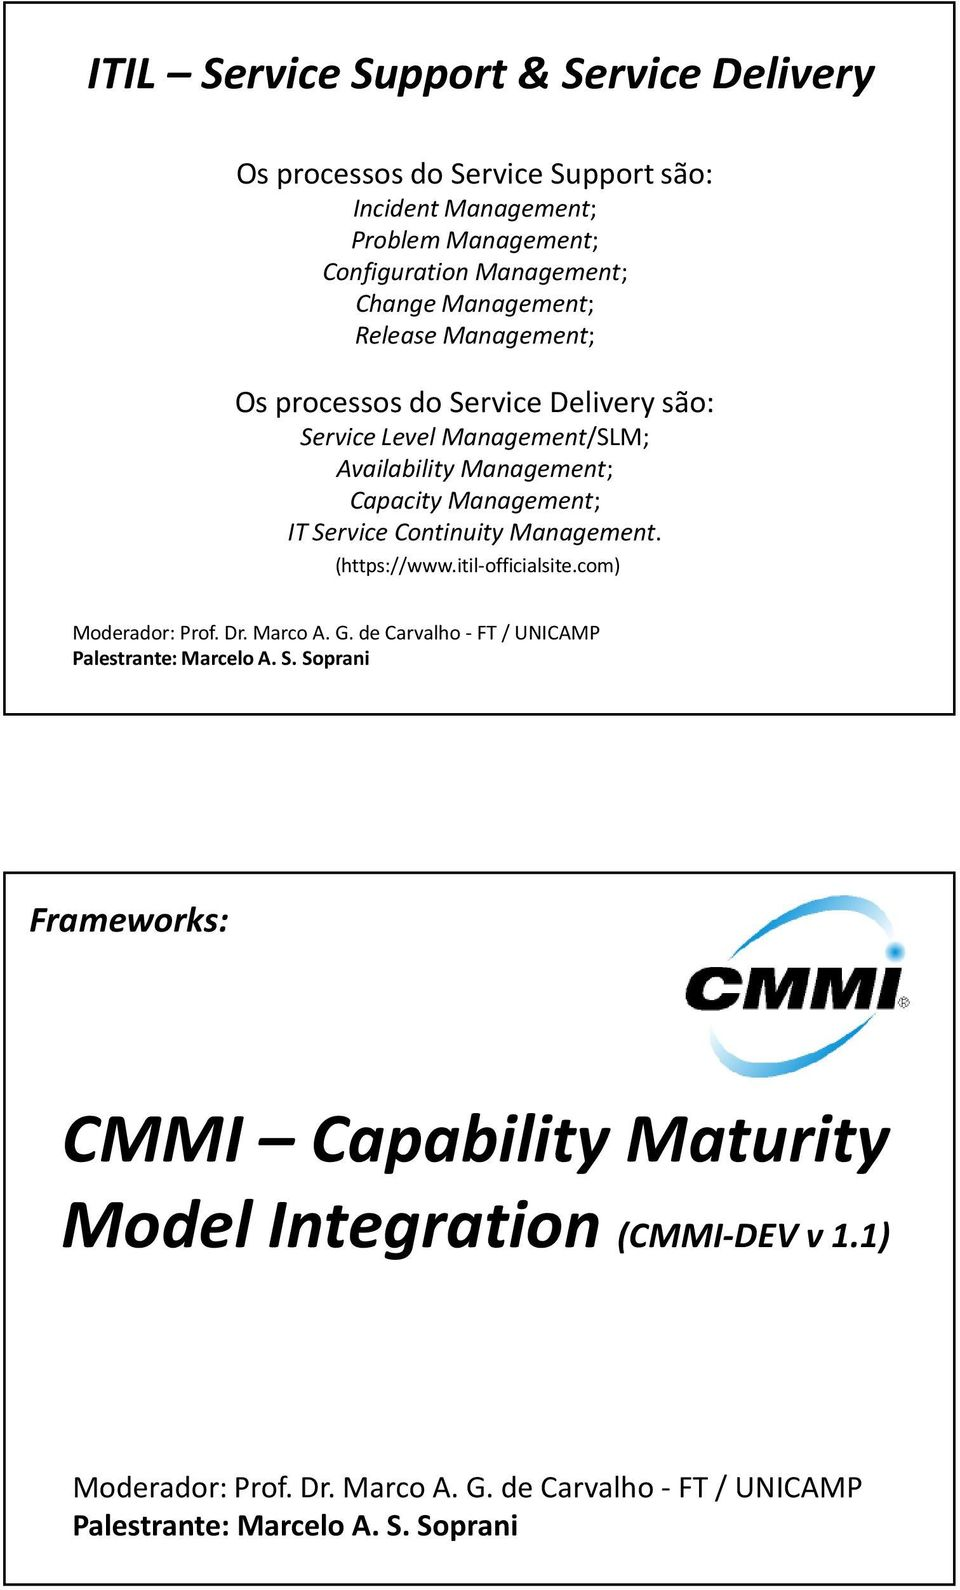 são: Service Level Management/SLM; Availability Management; Capacity Management; IT Service Continuity